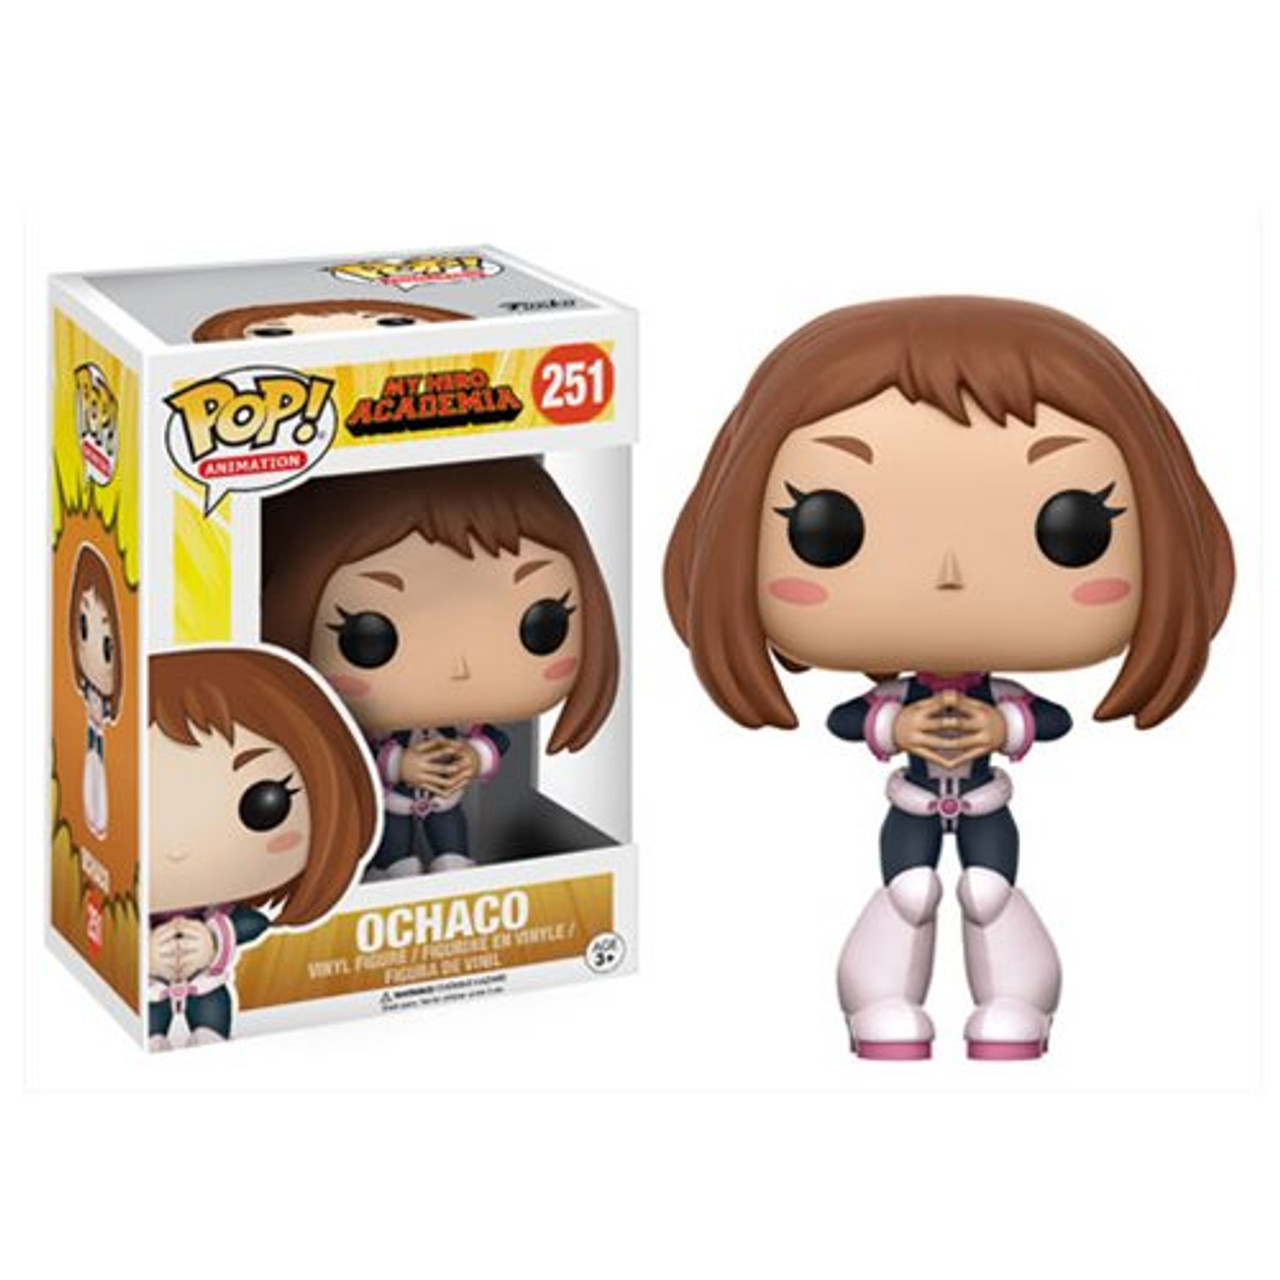 My Hero Academia Ochaco Funko Pop Vinyl Figure Animation 251 Super Fantasy Land